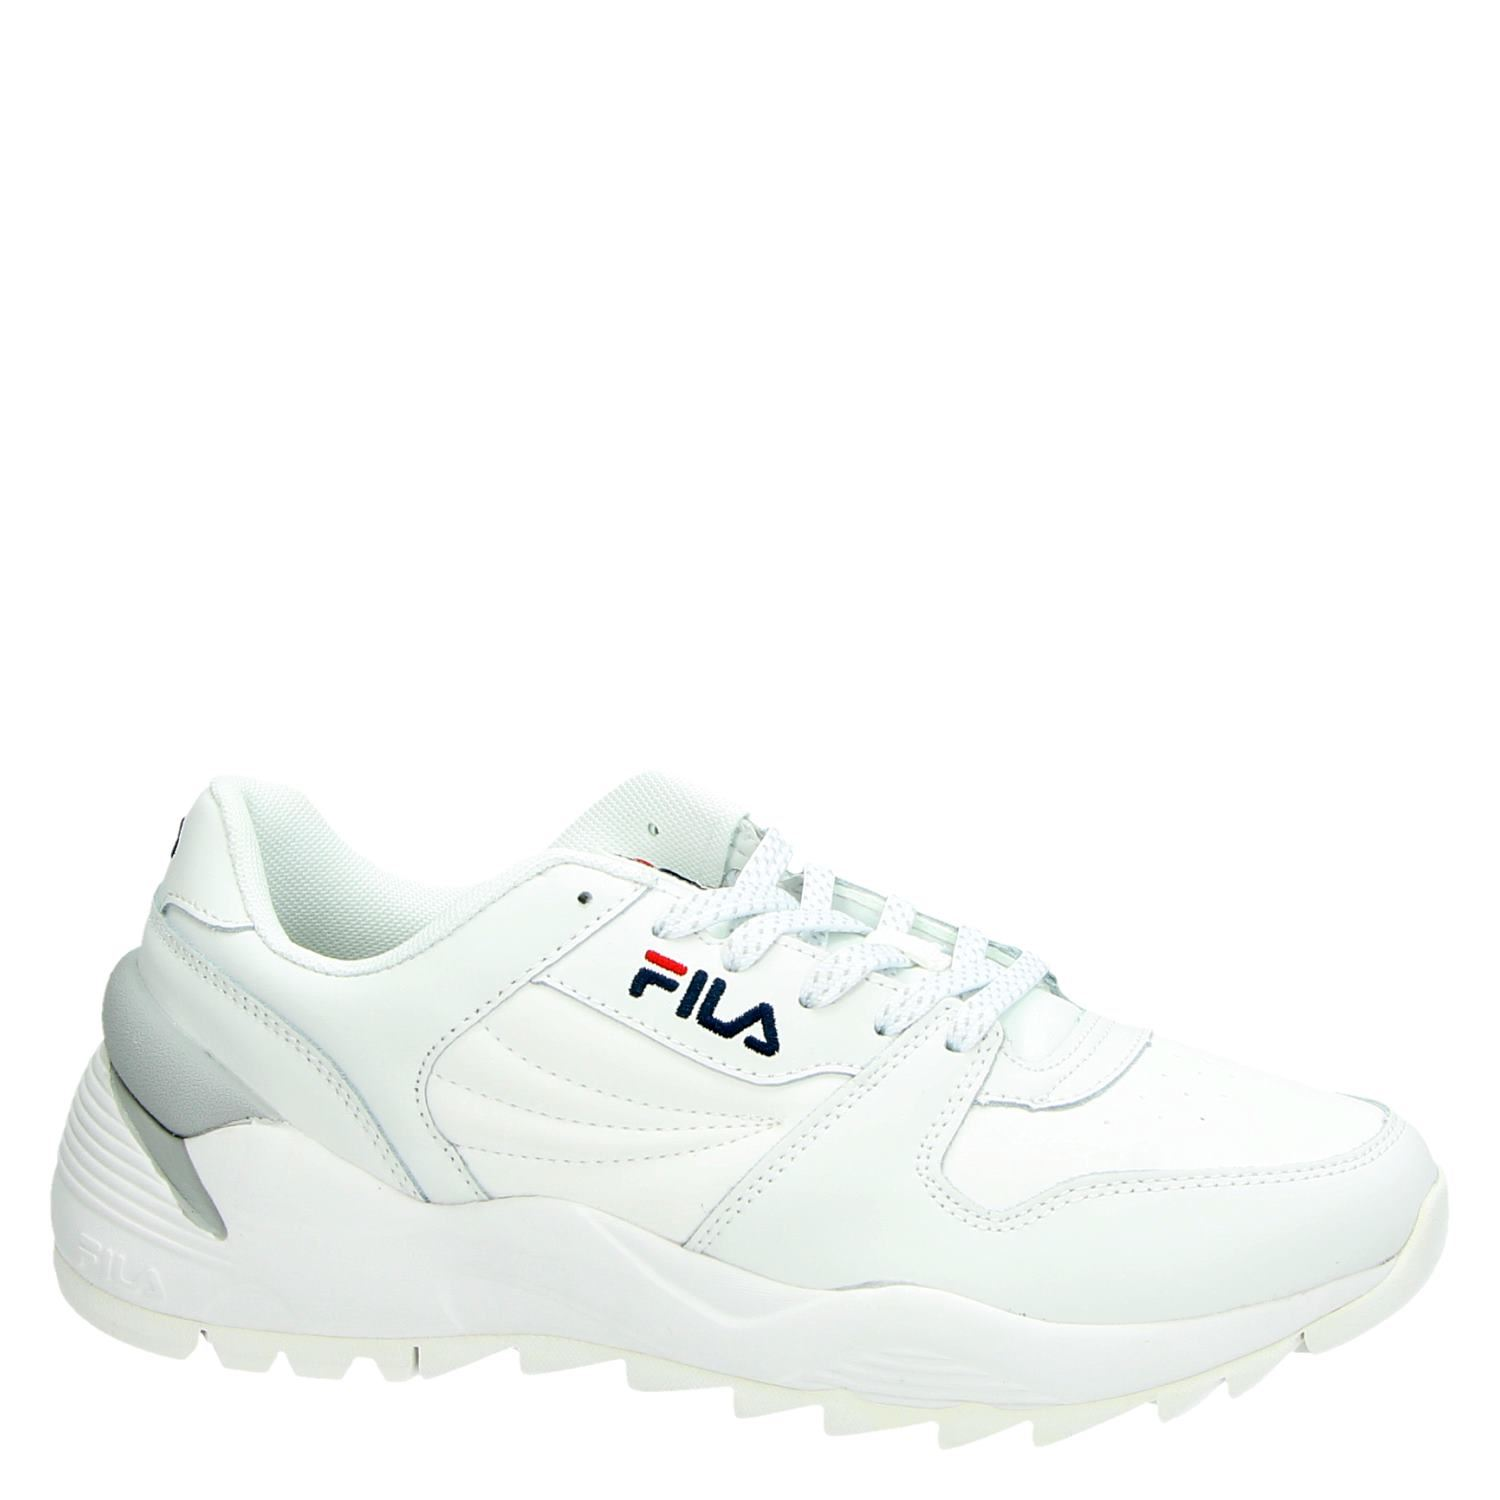 34b6cdd1bed Fila Orbit CMR jogger Low heren lage sneakers wit